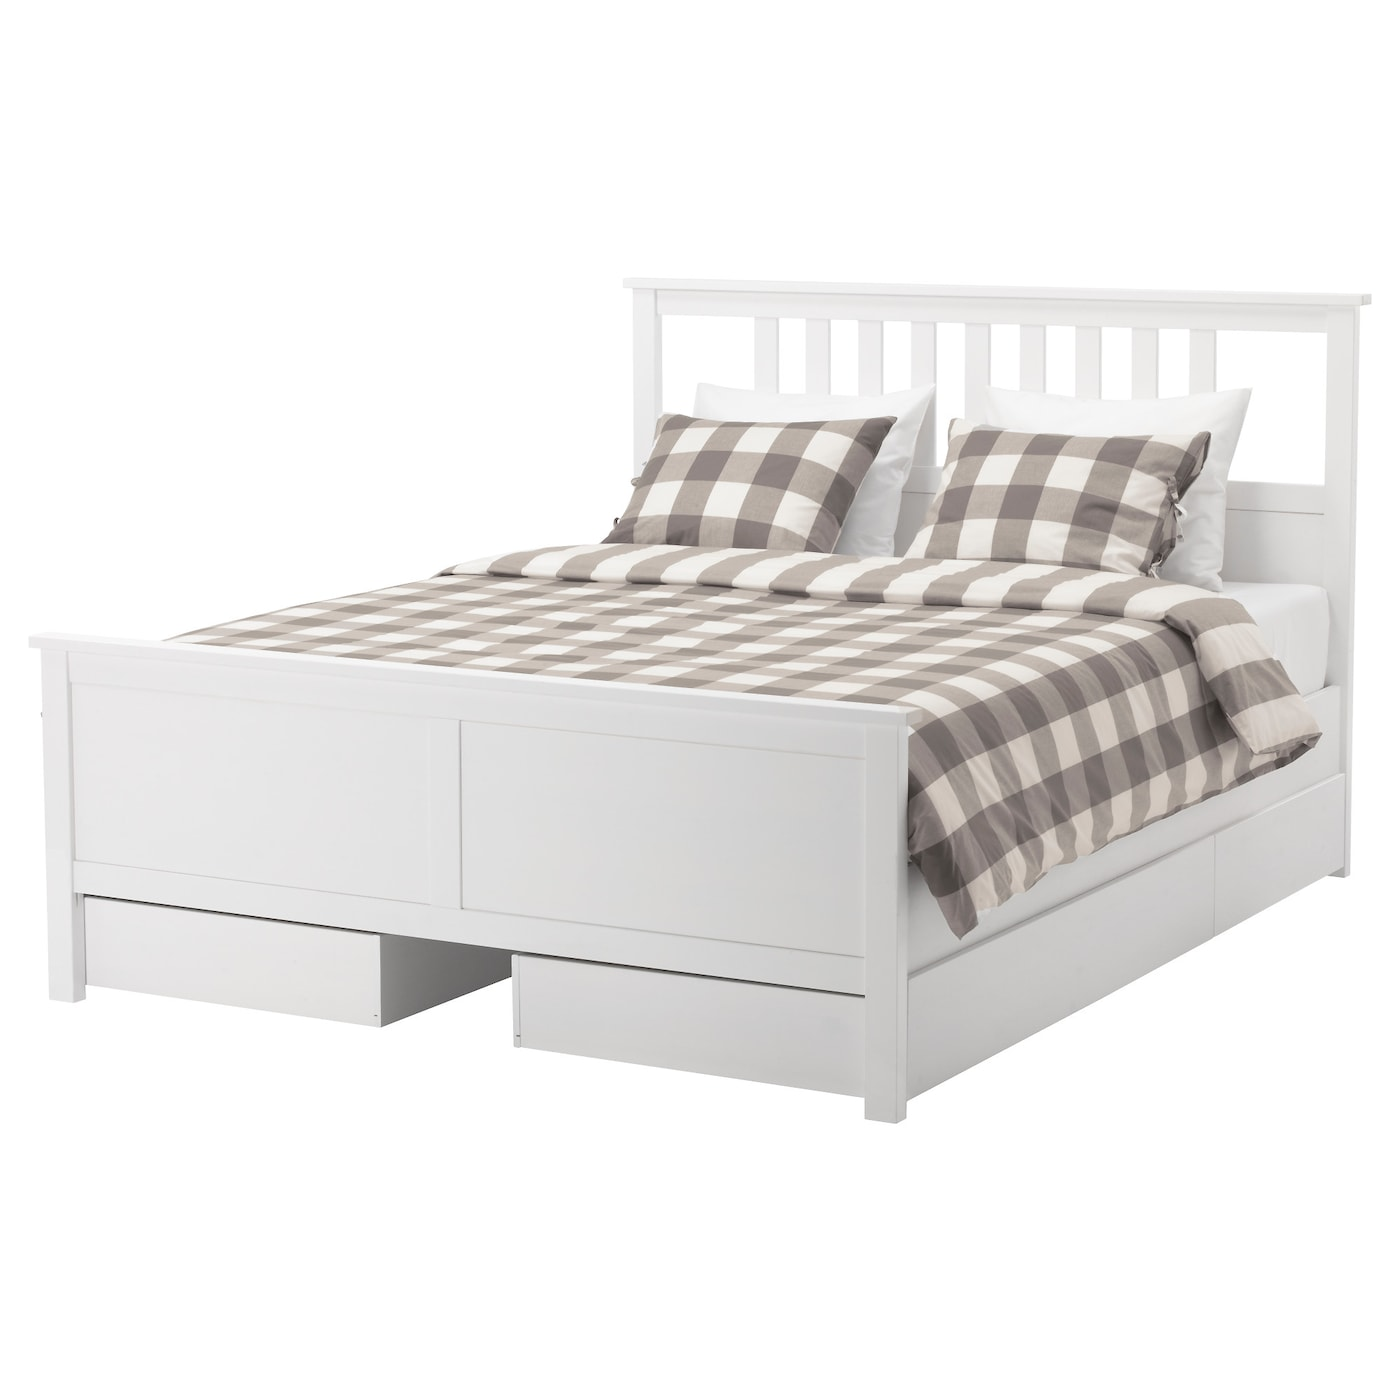 HEMNES Bed frame with 4 storage boxes White stain luröy Standard Double IKEA